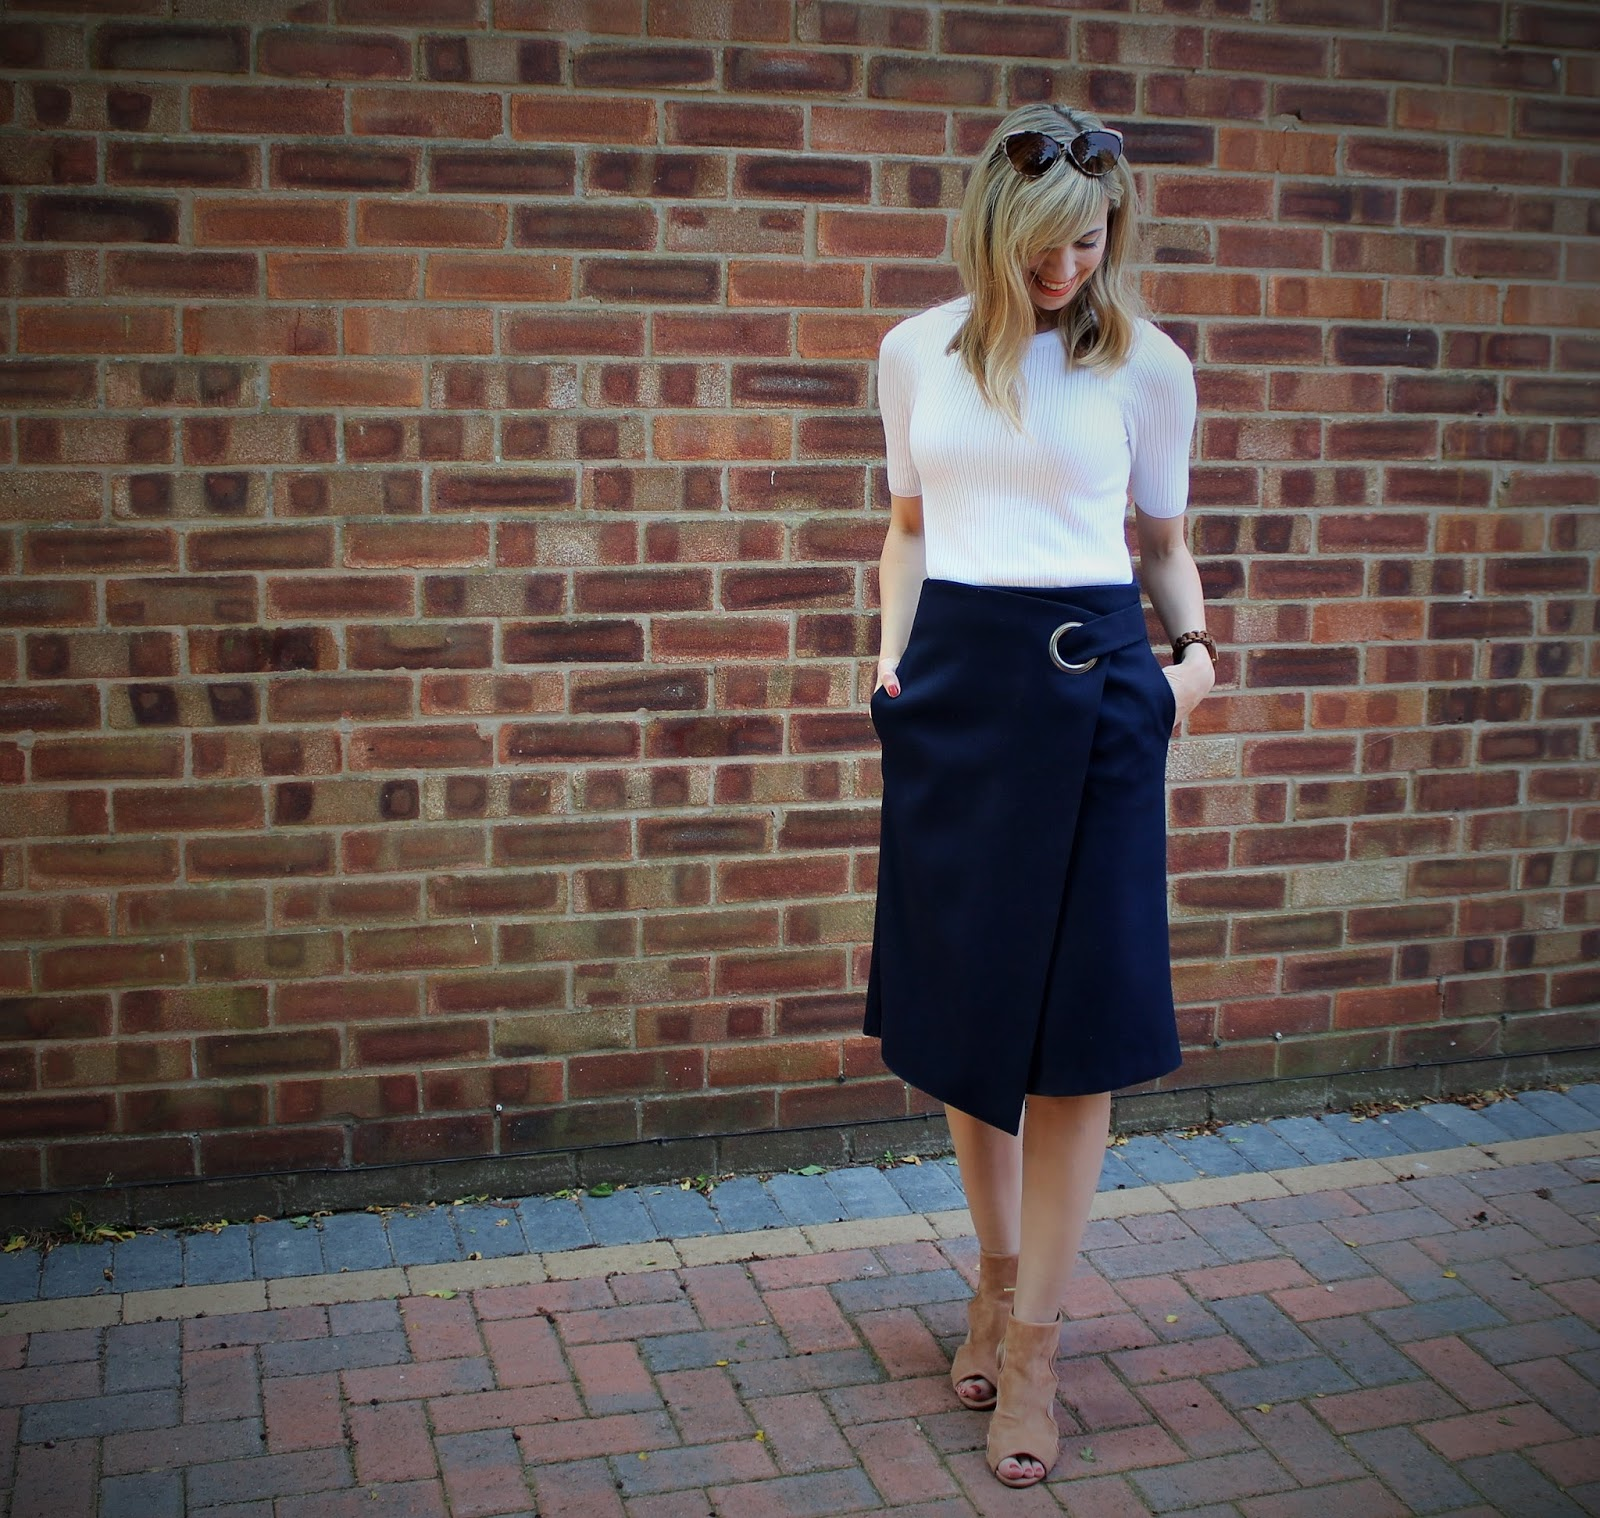 The Wrap Midi 3 - OOTD featuring Topshop skirt and River Island shoes